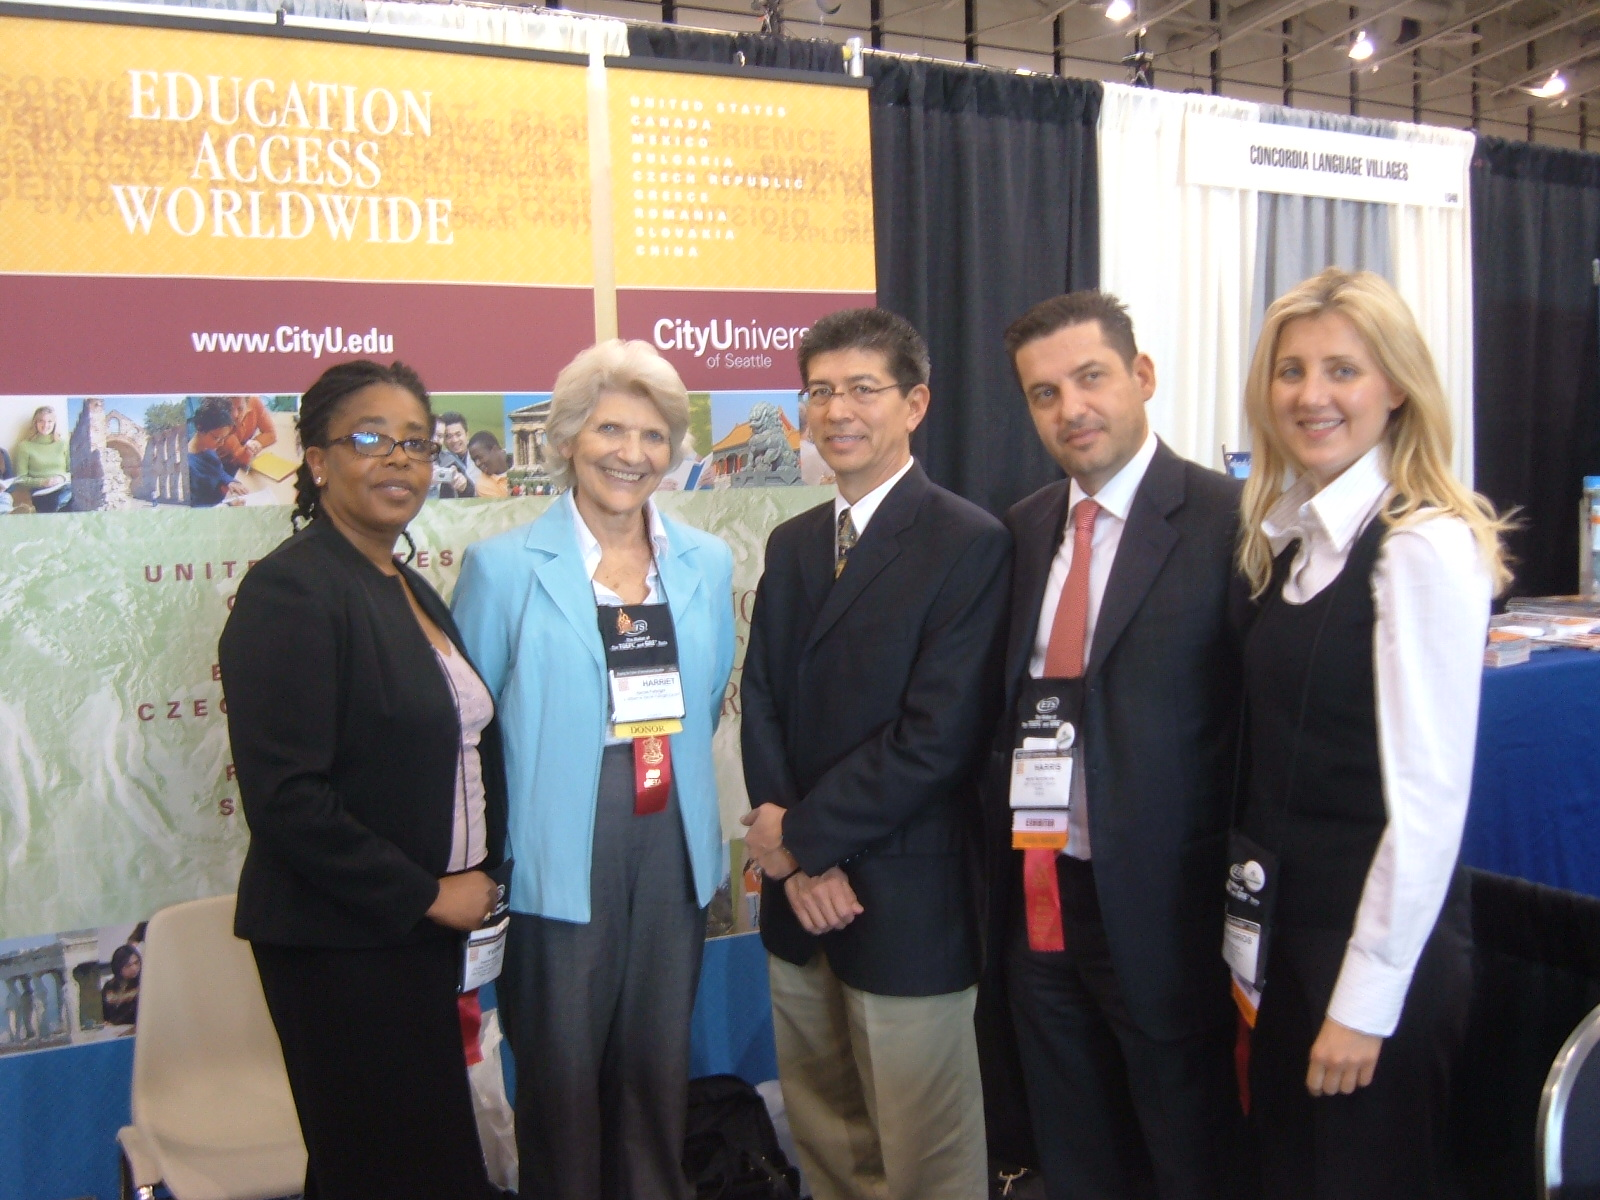 Dr. Y. Captain, Mrs. Fulbright, Dr. F. L. Garcia & Members of City University of Seatle